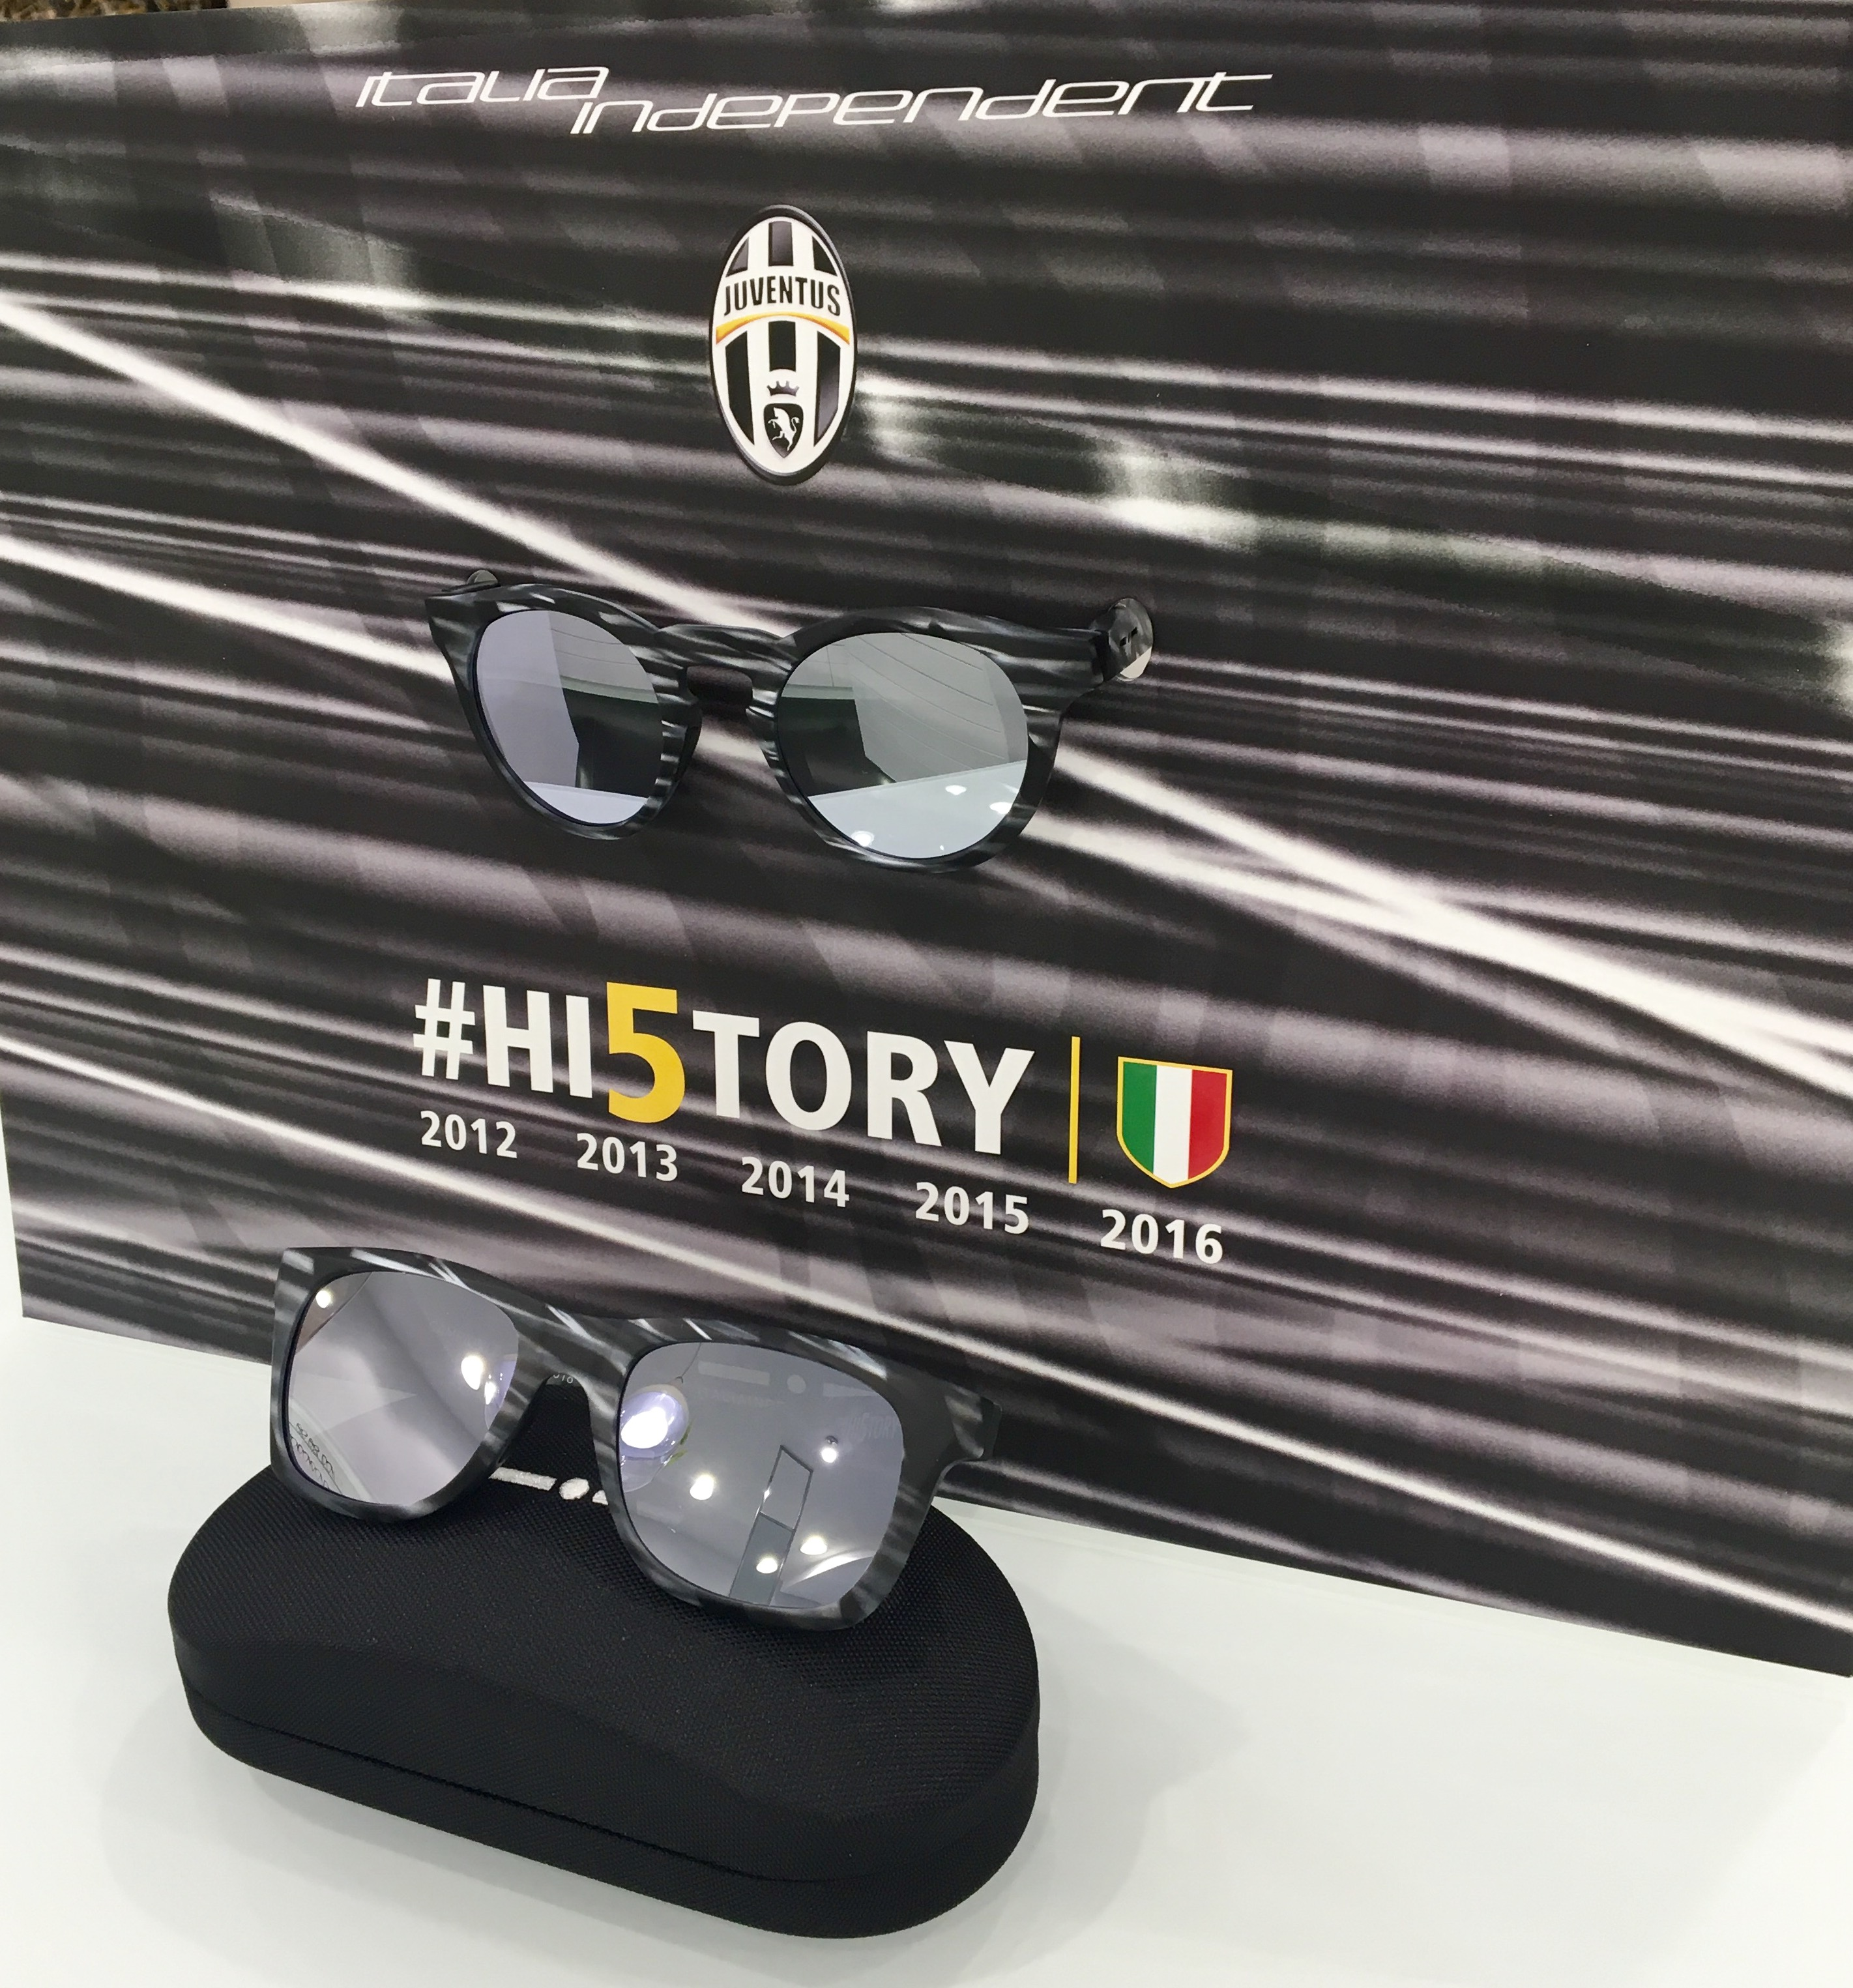 #HI5TORY by Italia Independent